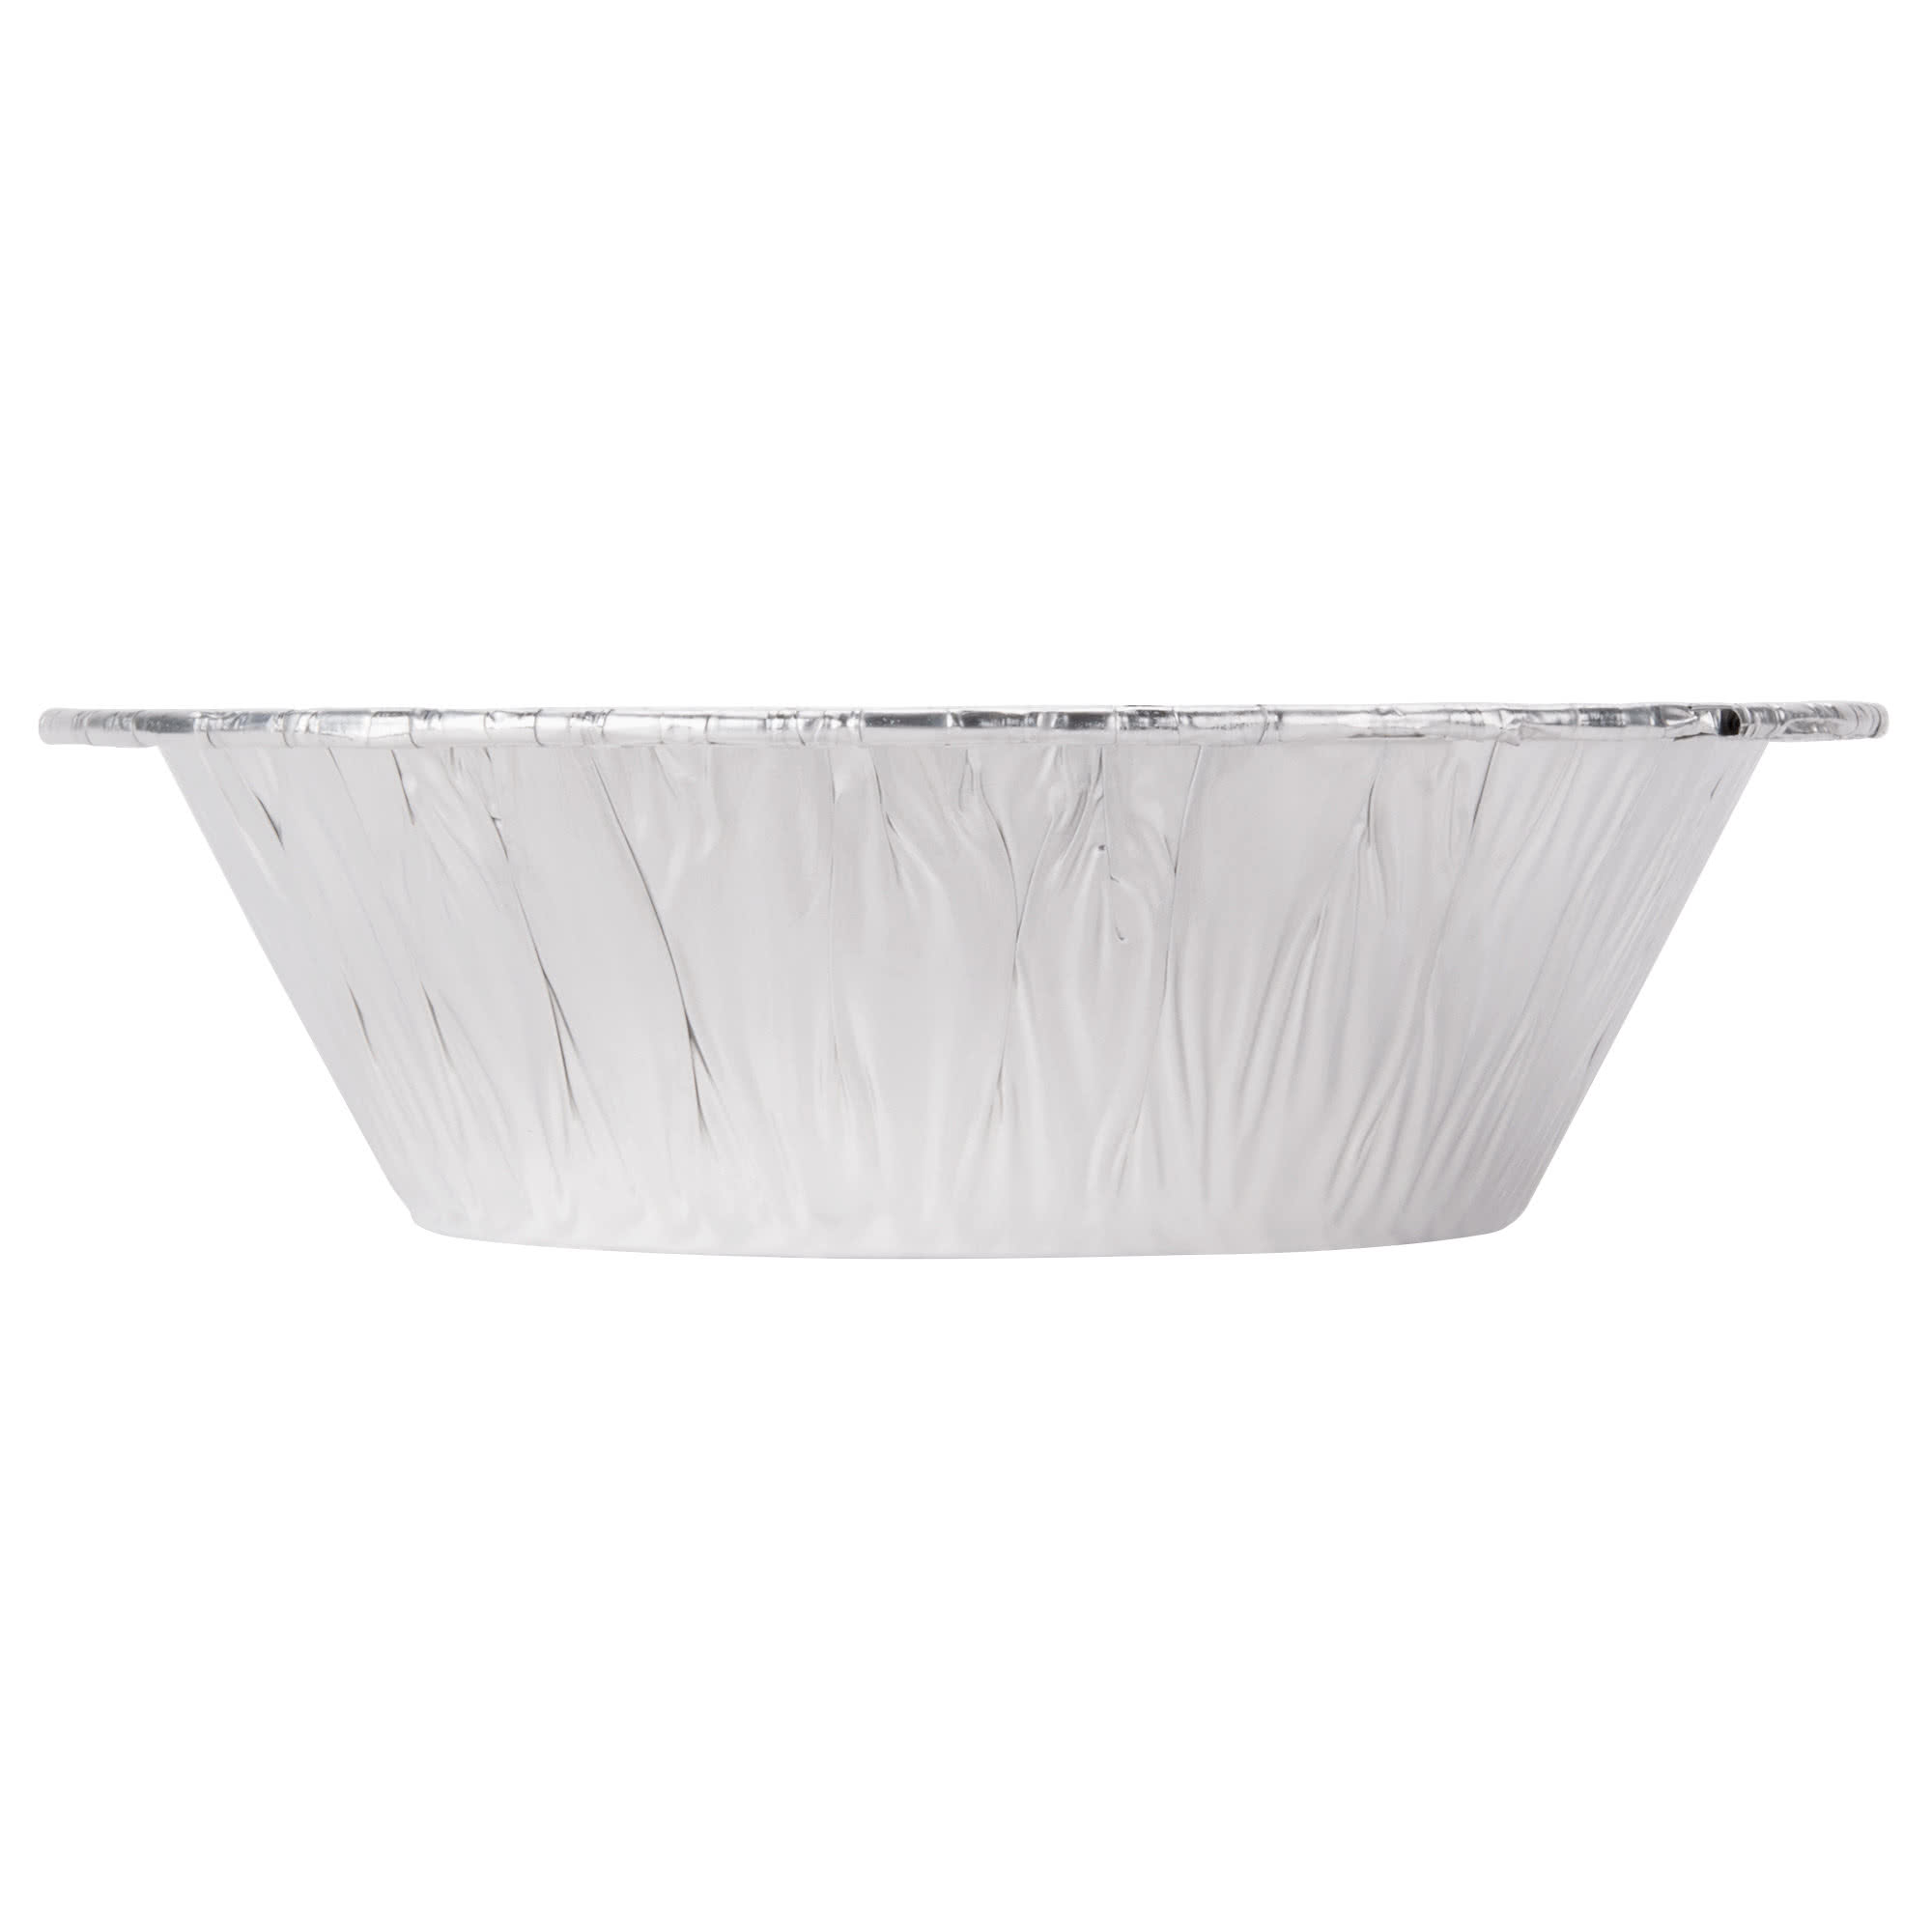 "5 3 4"" x 1 1 2"" Deep Foil Pot Pie Pan 1000 Case By TableTop King by TableTop King"